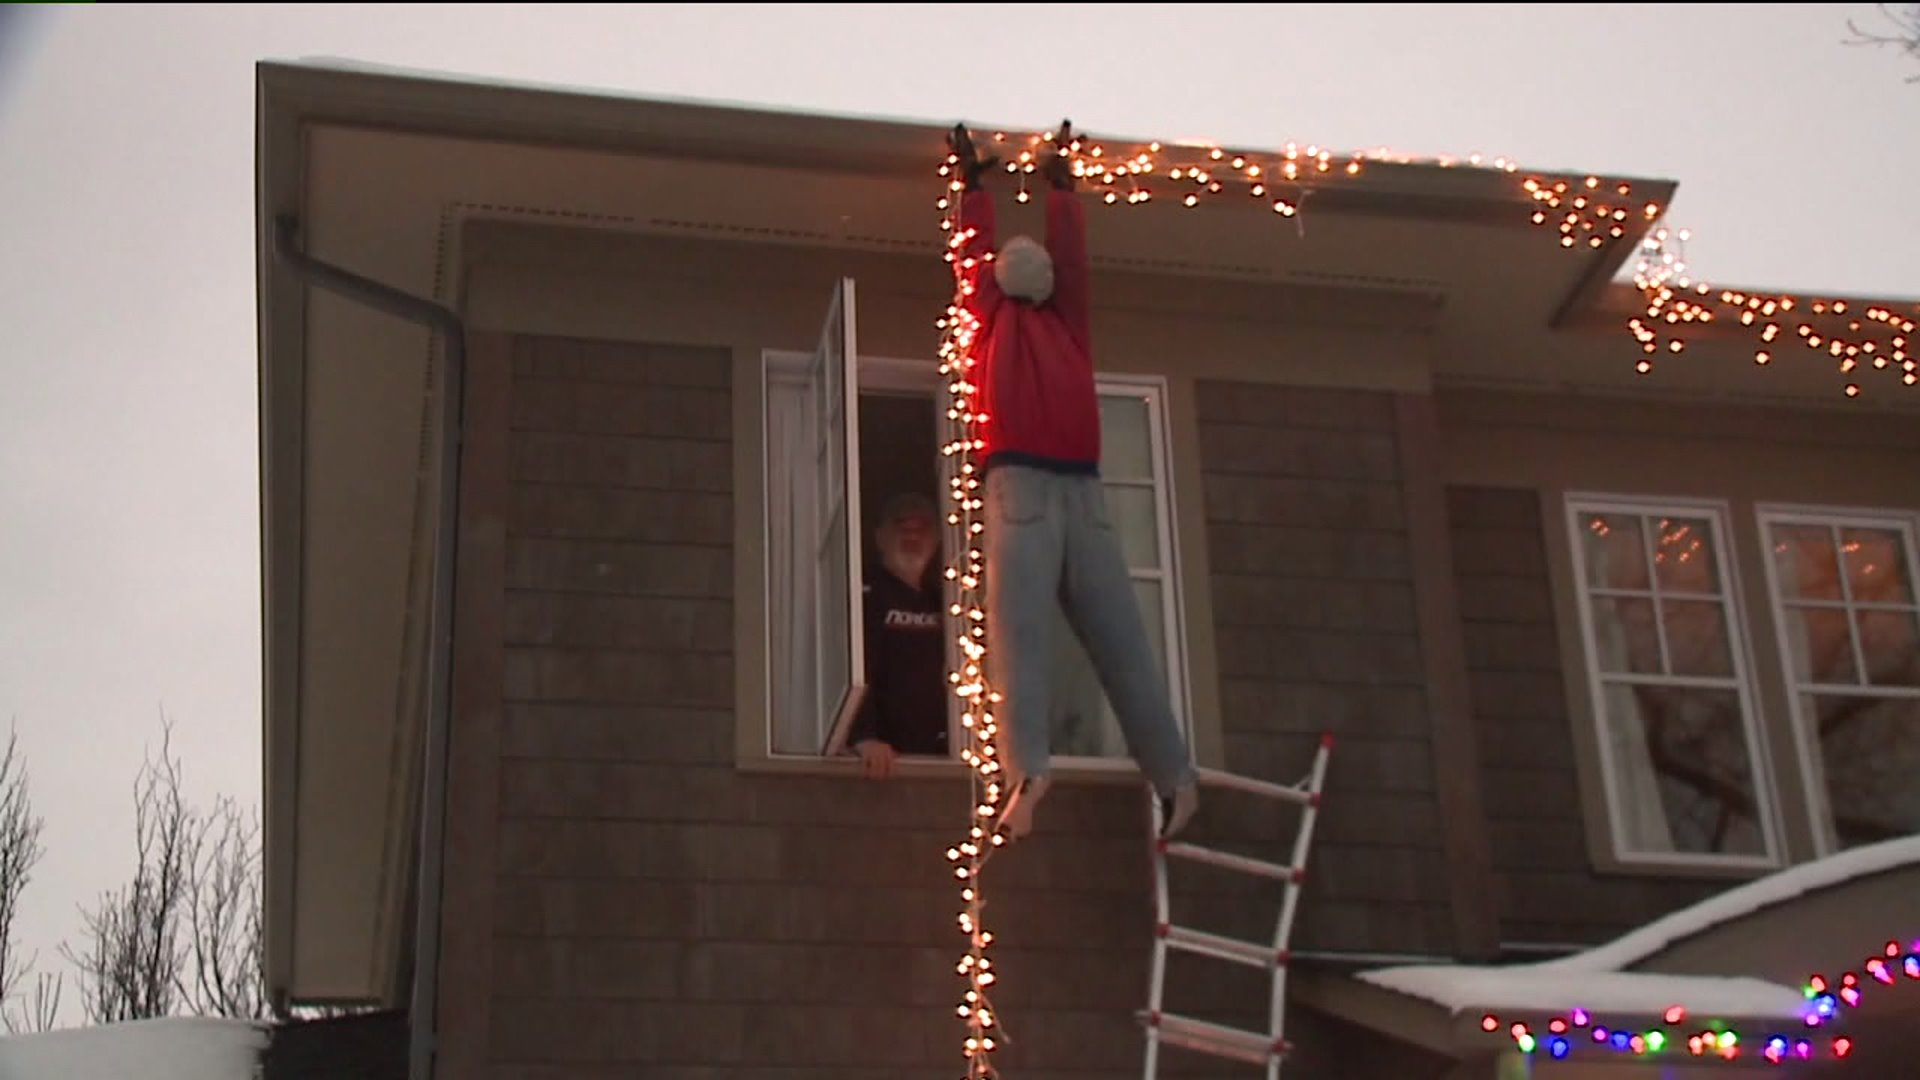 People Call 911 After Seeing Dummy Hanging Christmas Lights Dangling From Roof Fox31 Denver